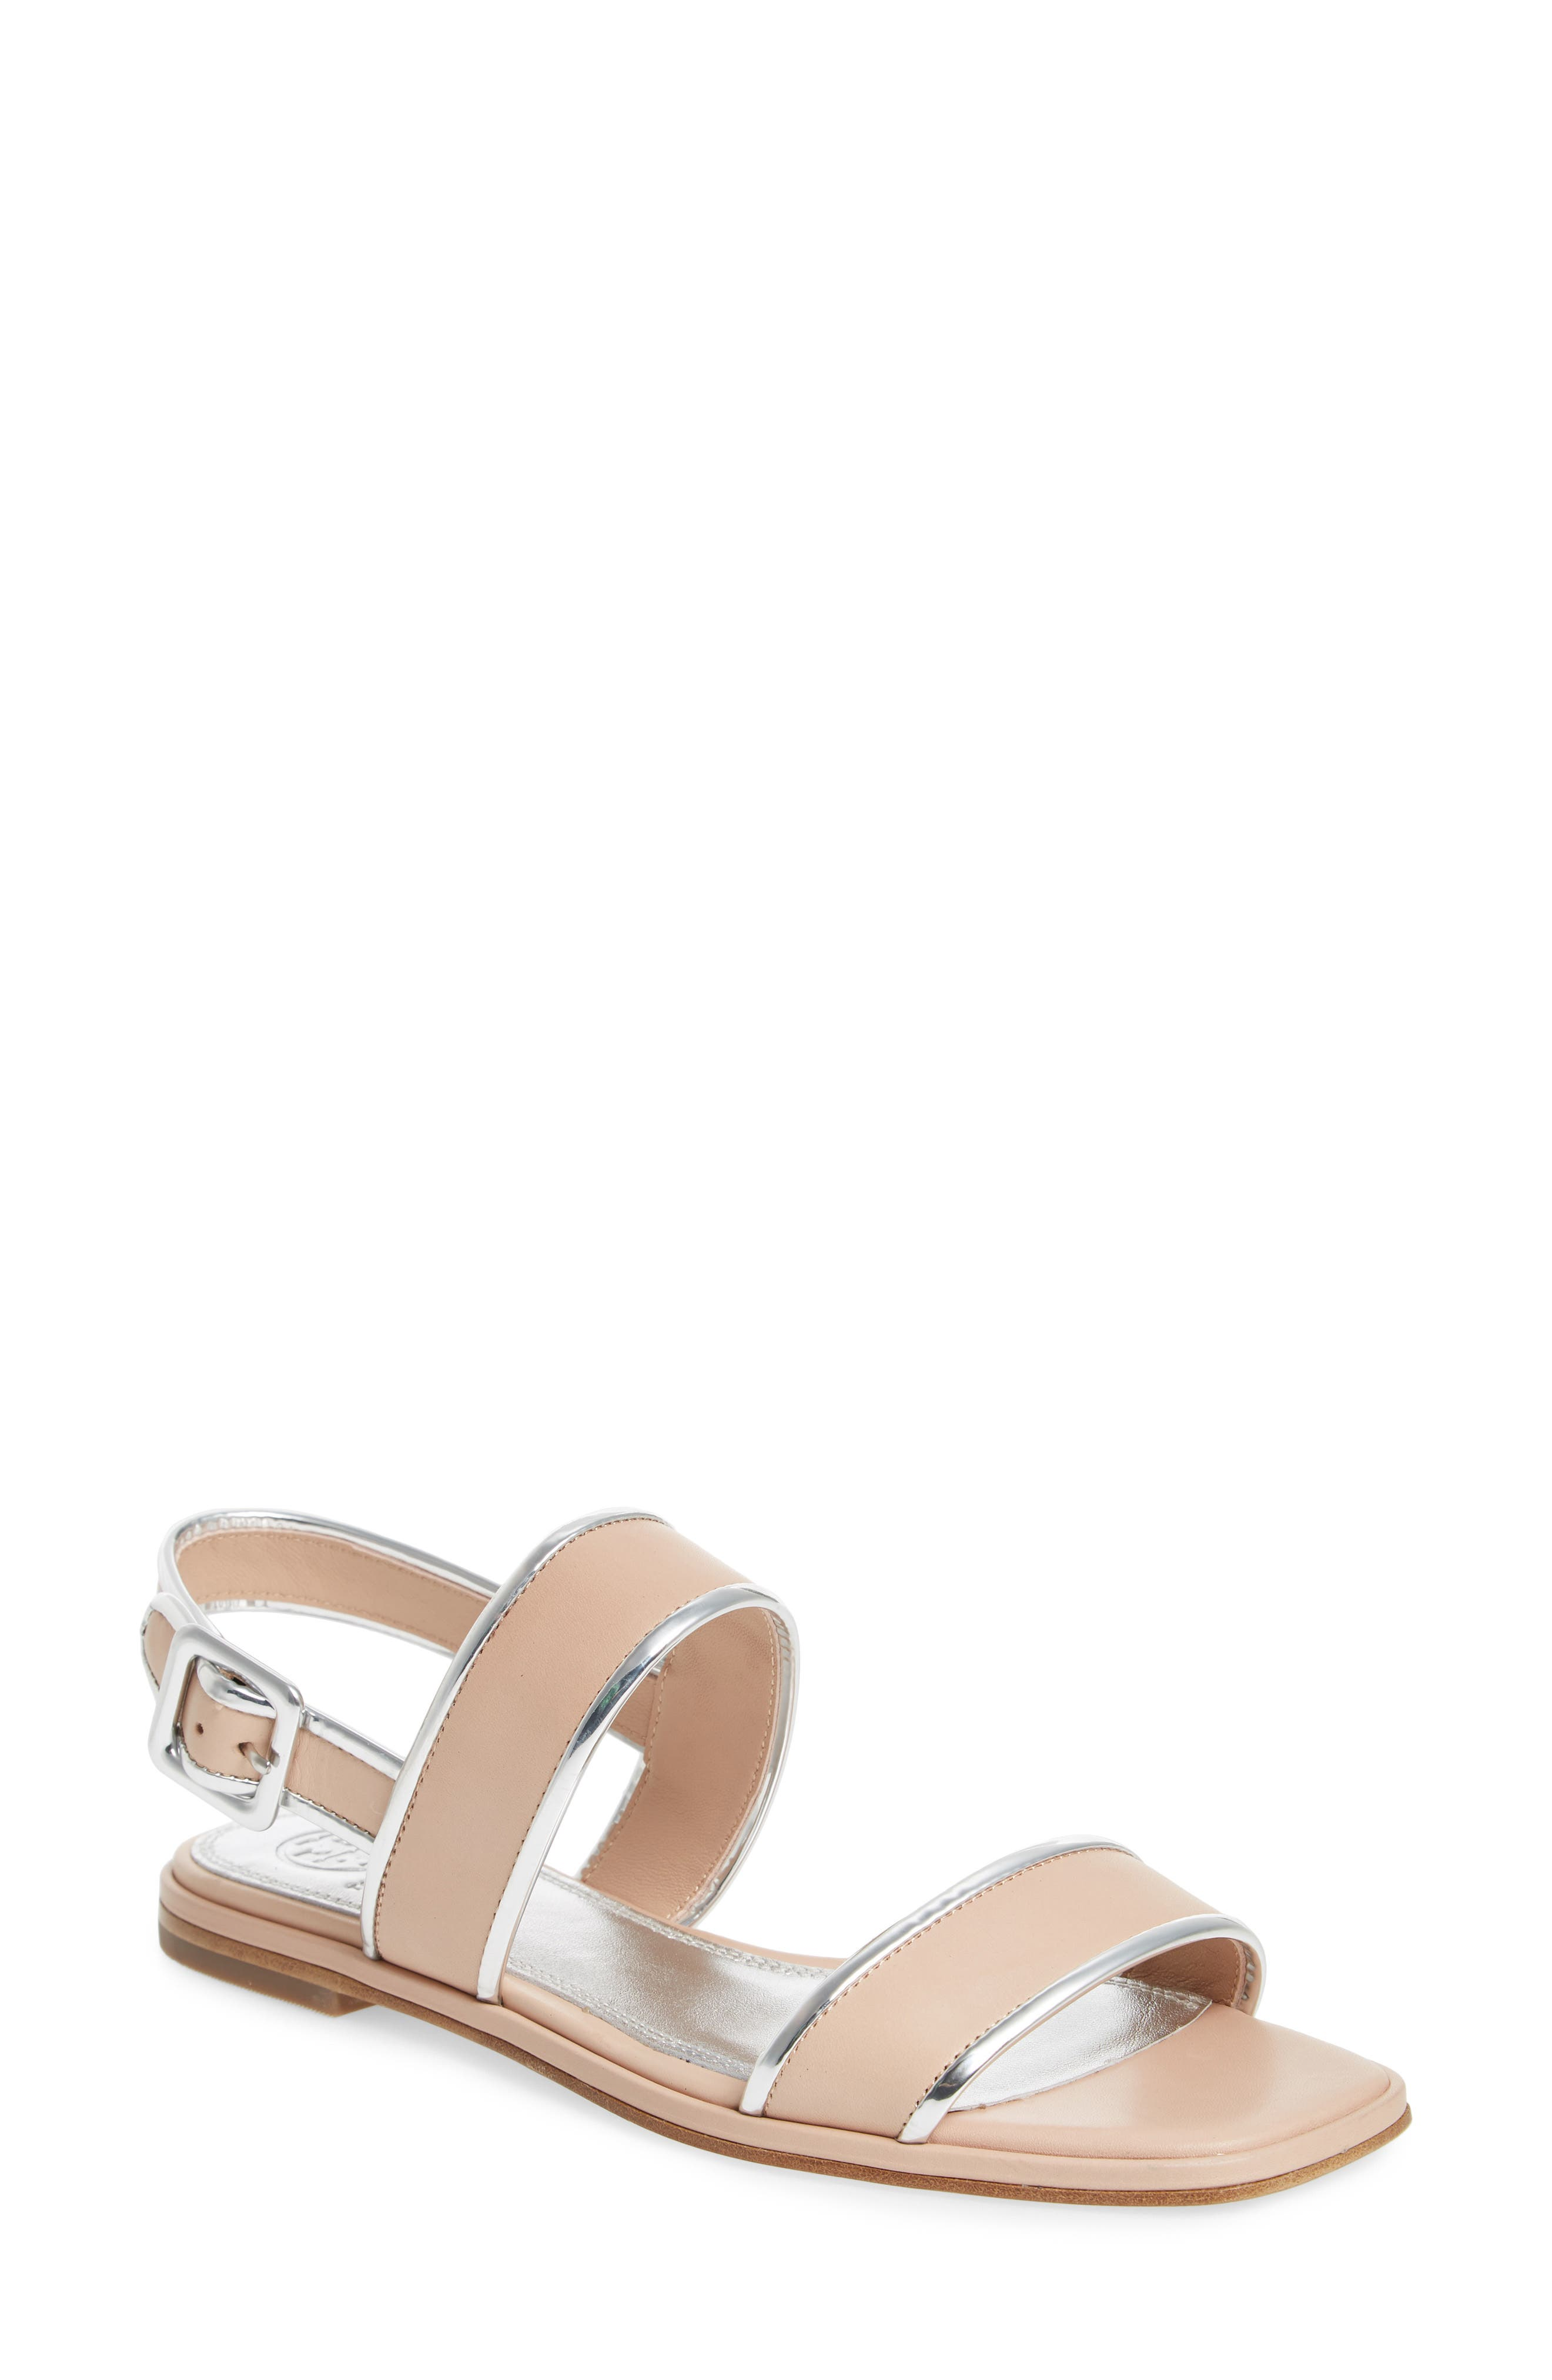 Delaney Double Strap Sandal,                             Main thumbnail 2, color,